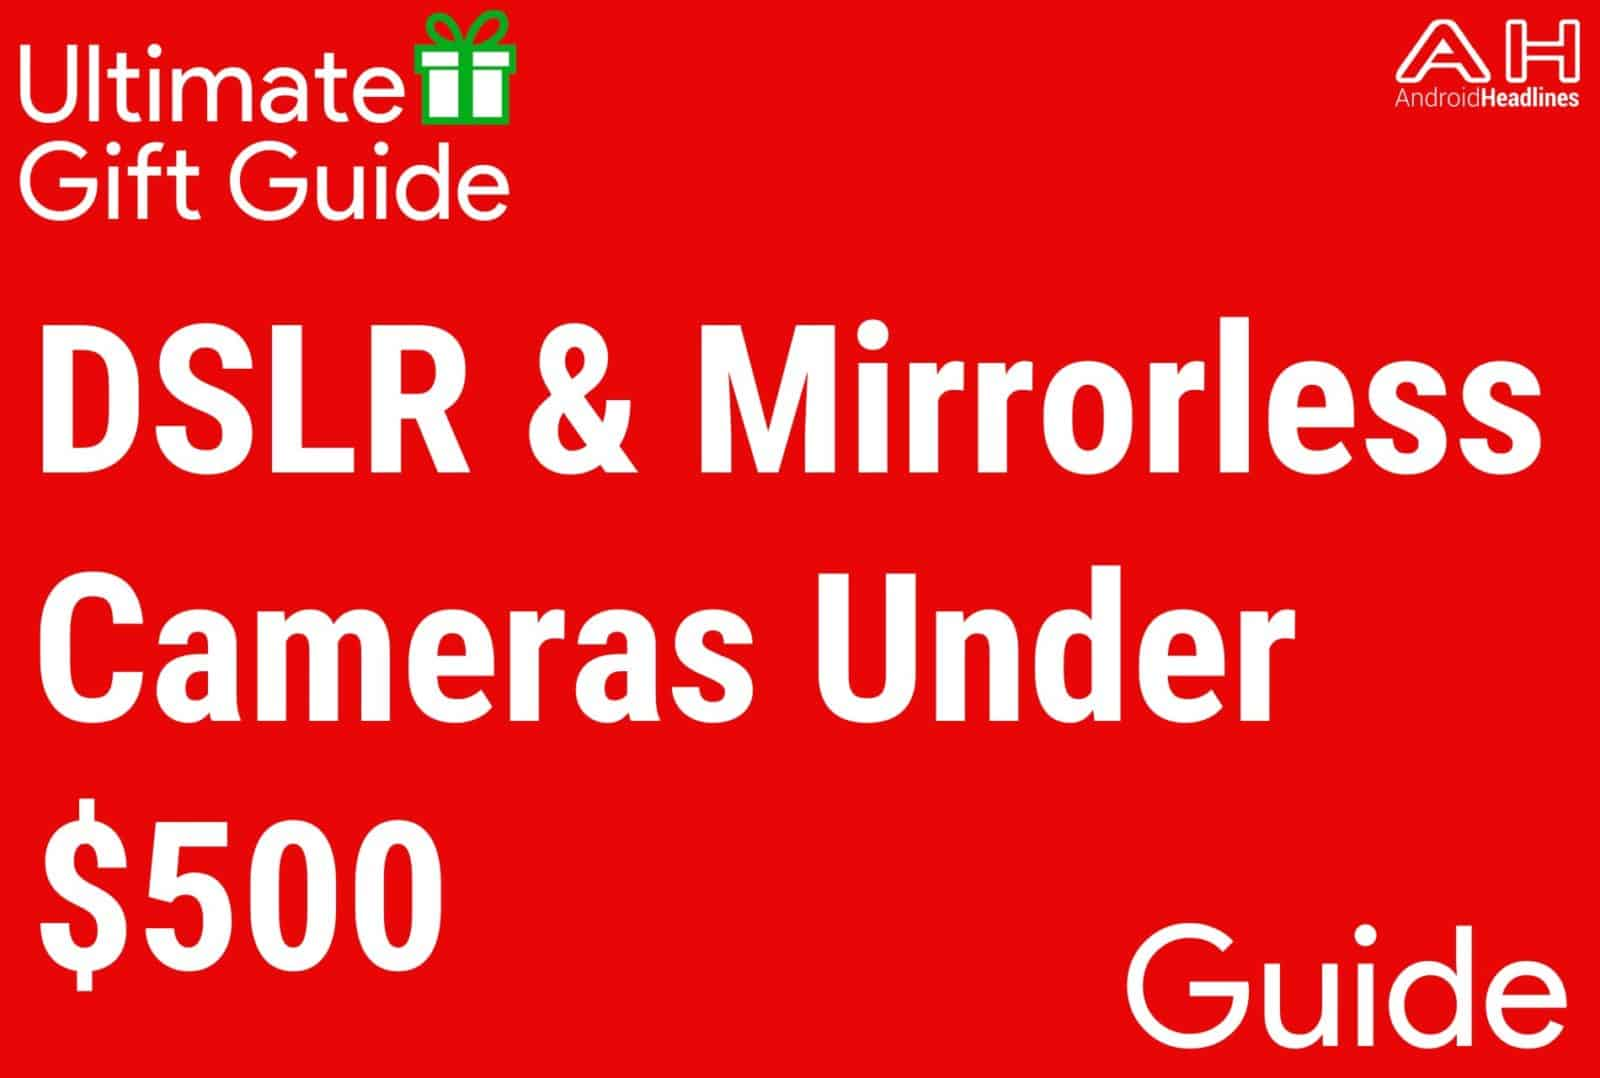 DSLR and Mirrorless Cameras Under $500 - Gift Guide